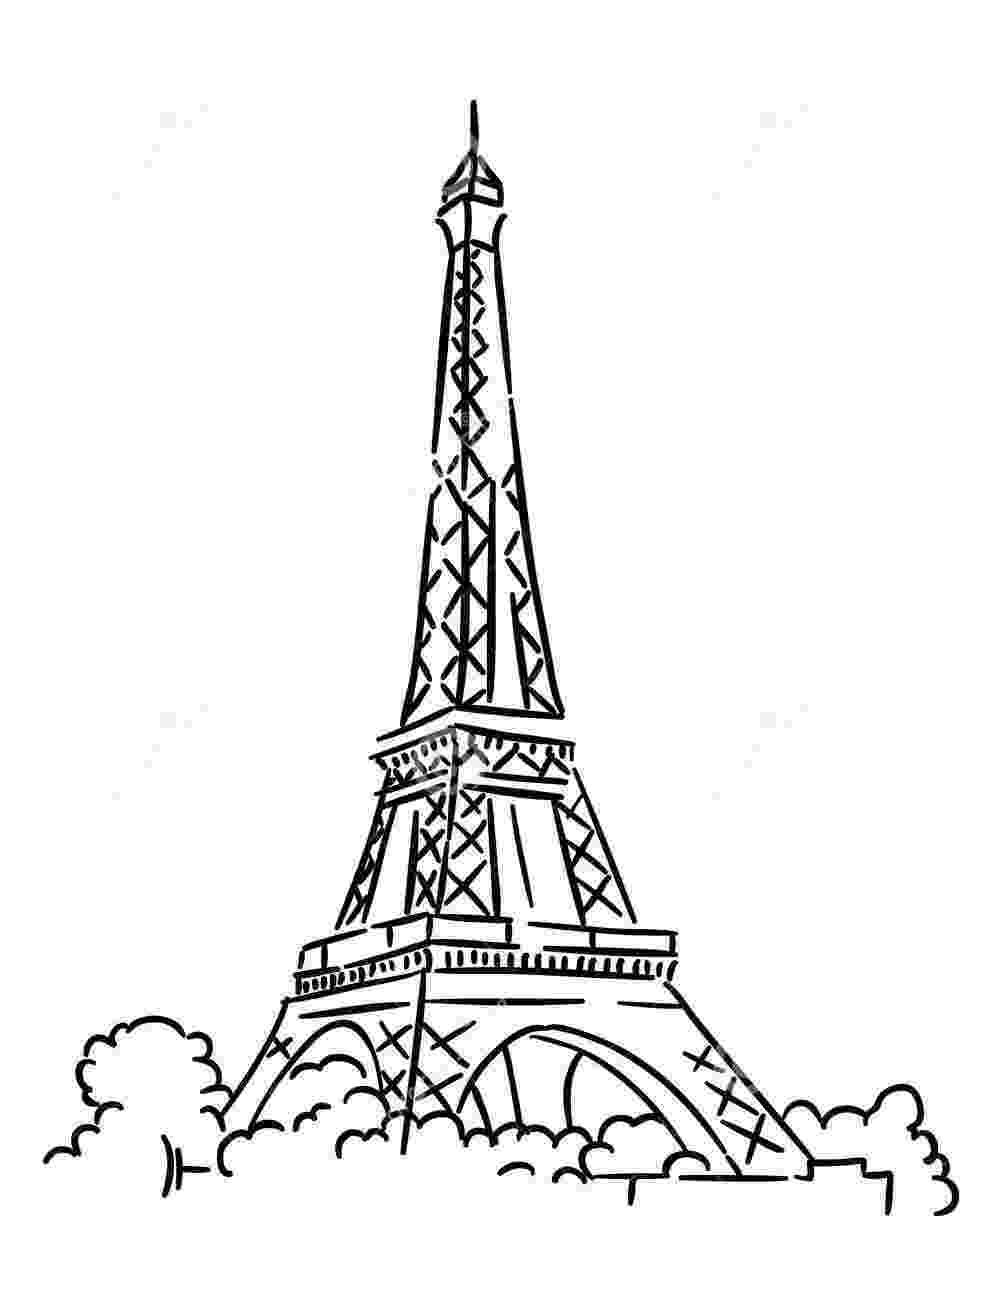 printable coloring pages paris paris eiffel tower coloring pages download and print for free pages printable coloring paris 1 1